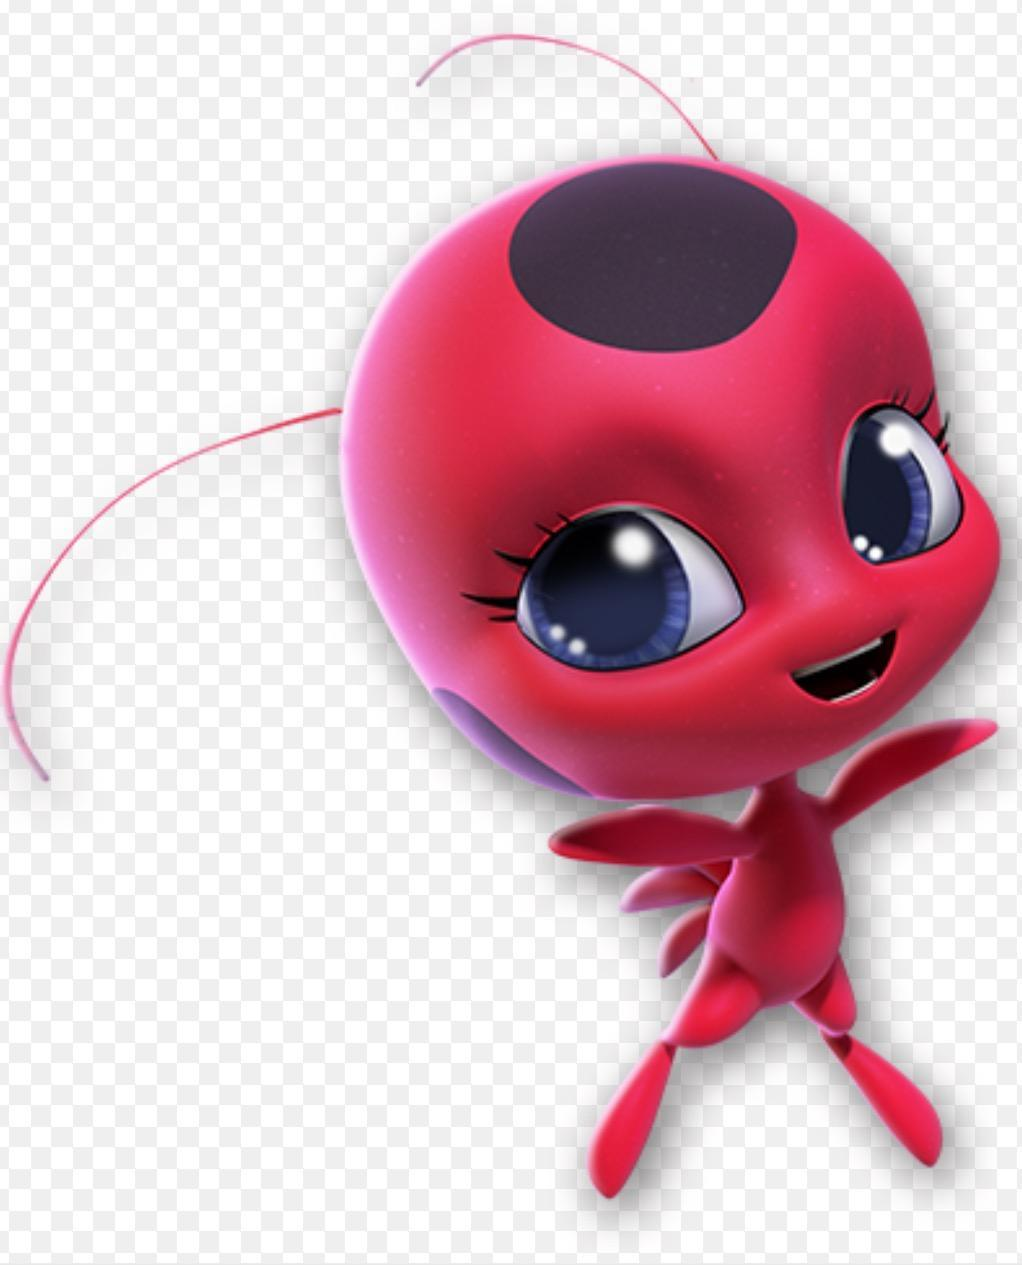 How well do you know Meraculous Ladybug?